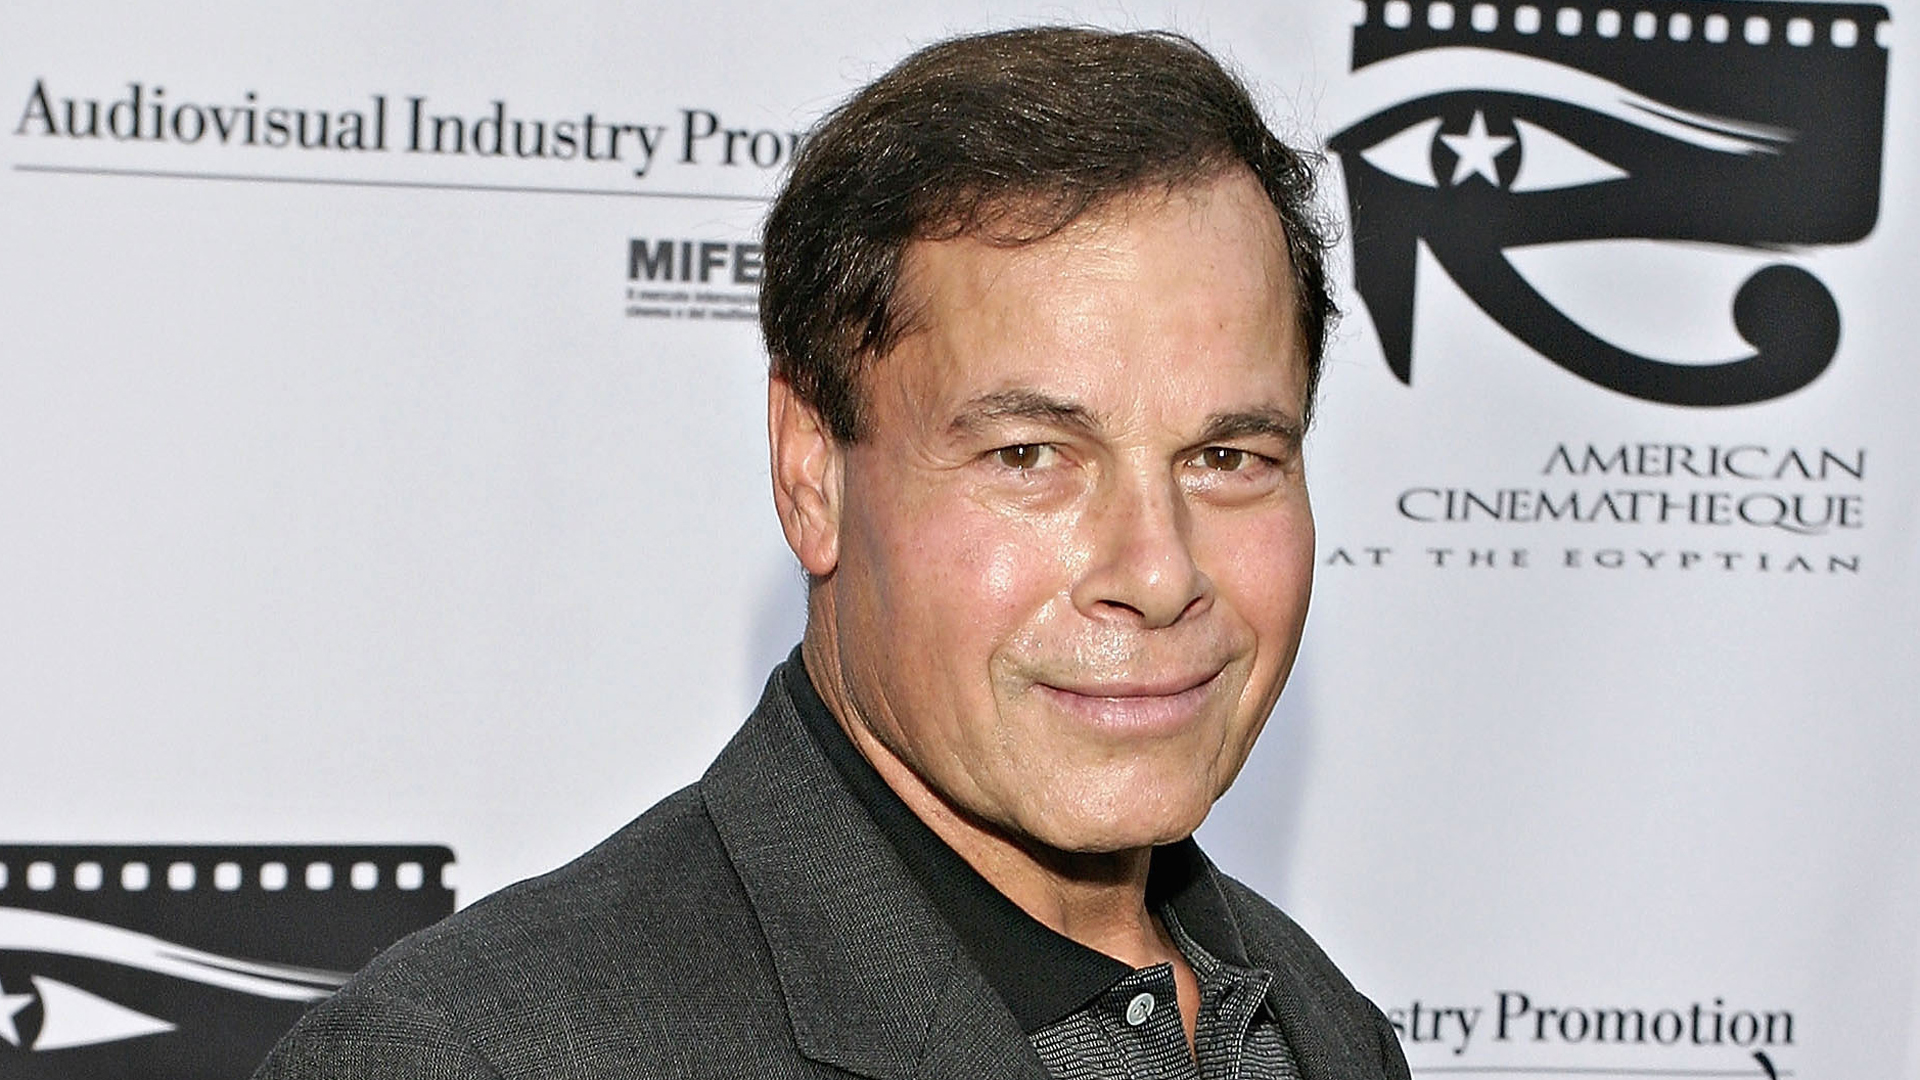 """Franco Columbu attends """"Cinema Italian Style: New Films From Italy (Under the Sign of Fellini)"""" on June 4, 2004 at the Egyptian Theatre in Hollywood. (Credit: Giulio Marcocchi/Getty Images)"""